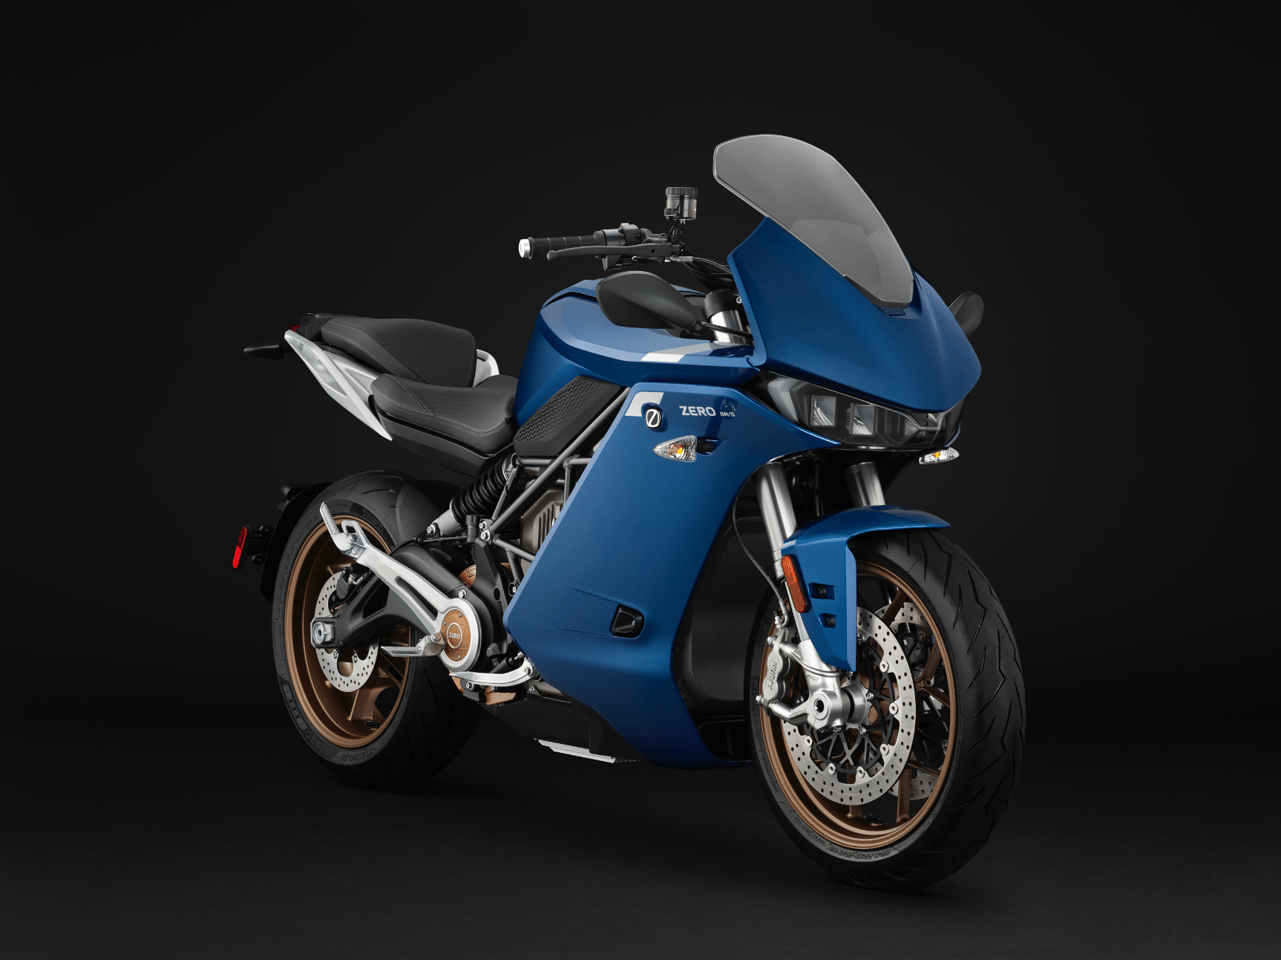 The new, fully faired Zero SR/S electric sports touring motorcycle